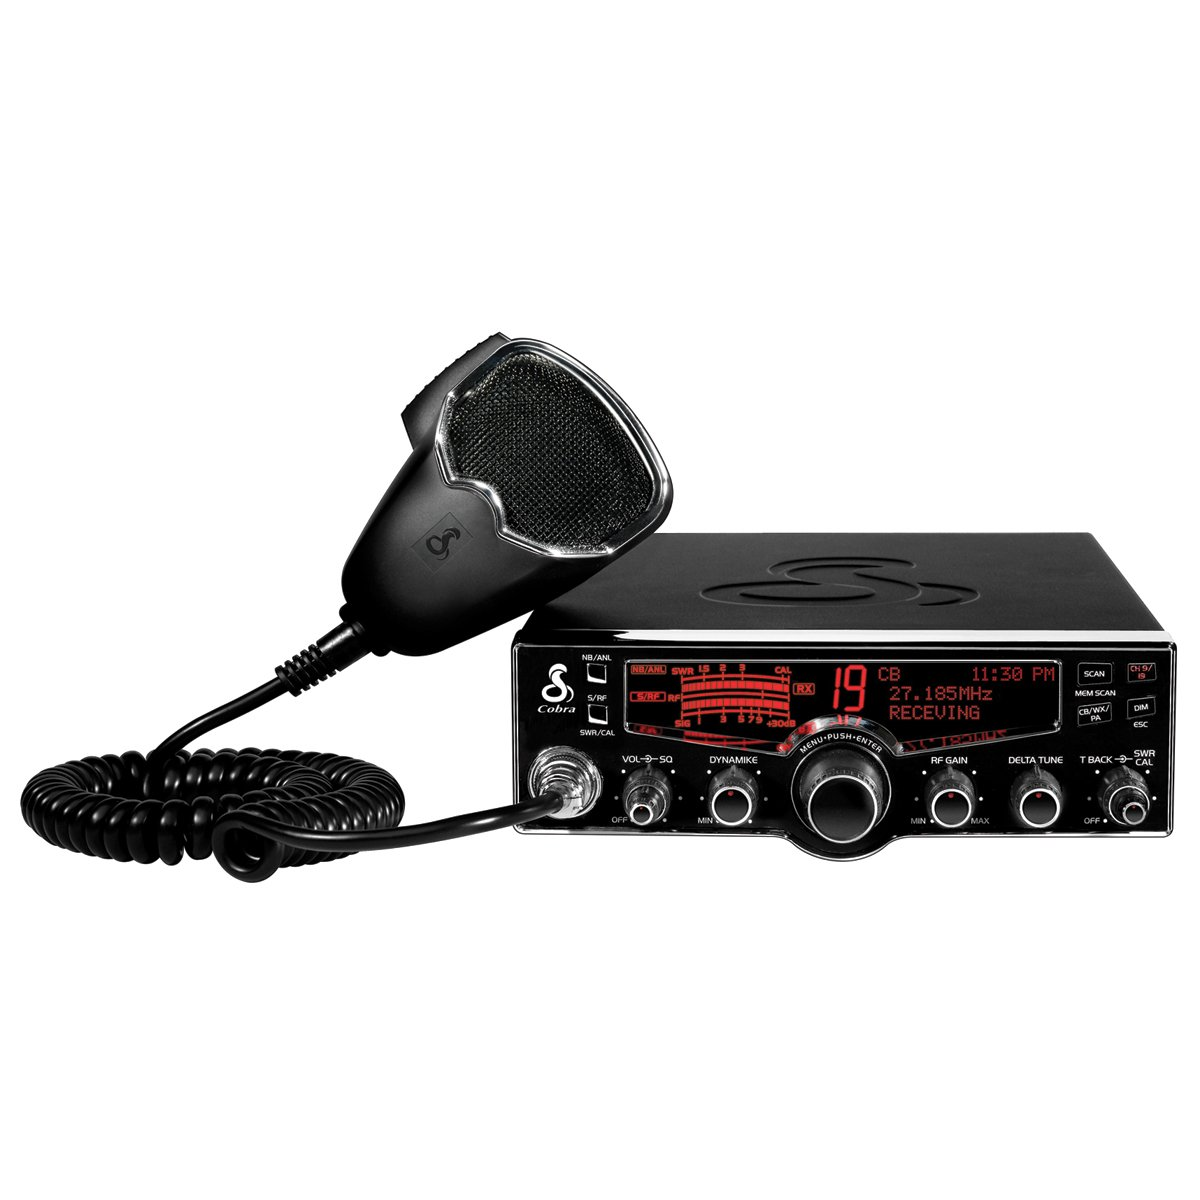 Cobra-29-LX-40-Channel-CB-Radio